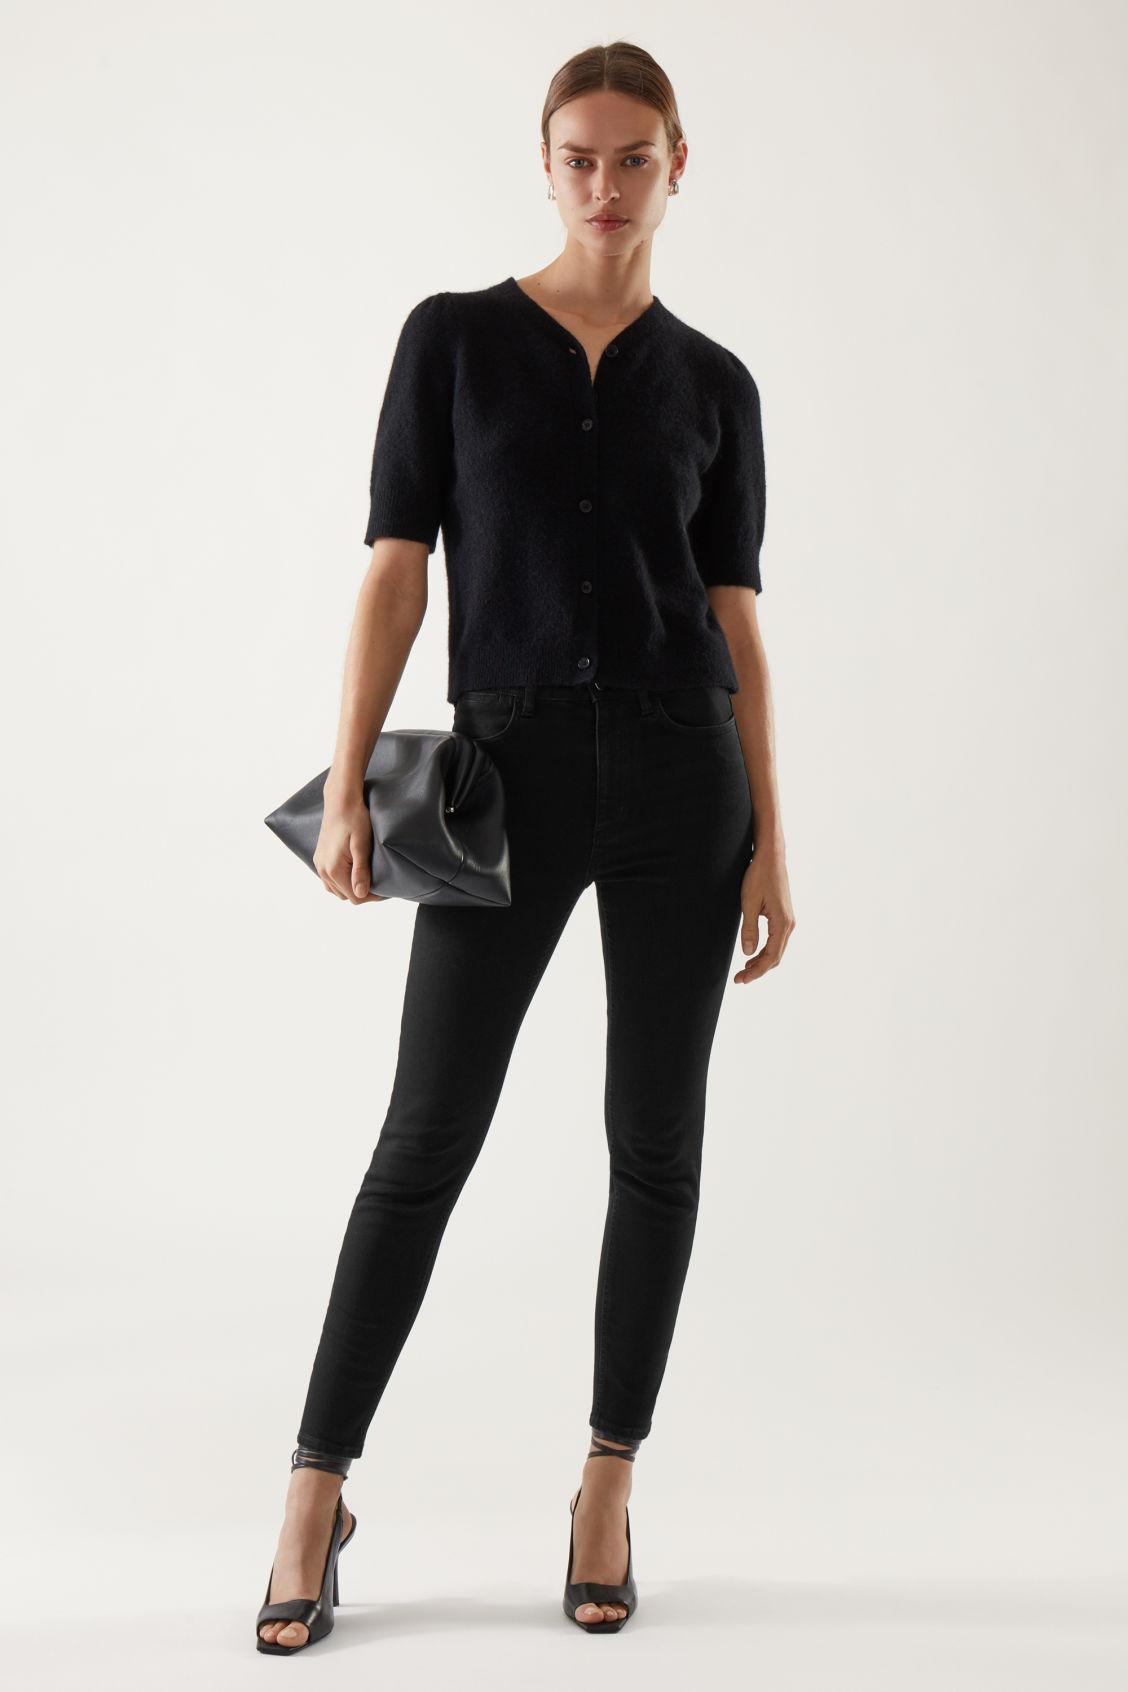 ORGANIC COTTON HIGH WAISTED SLIM FIT JEANS